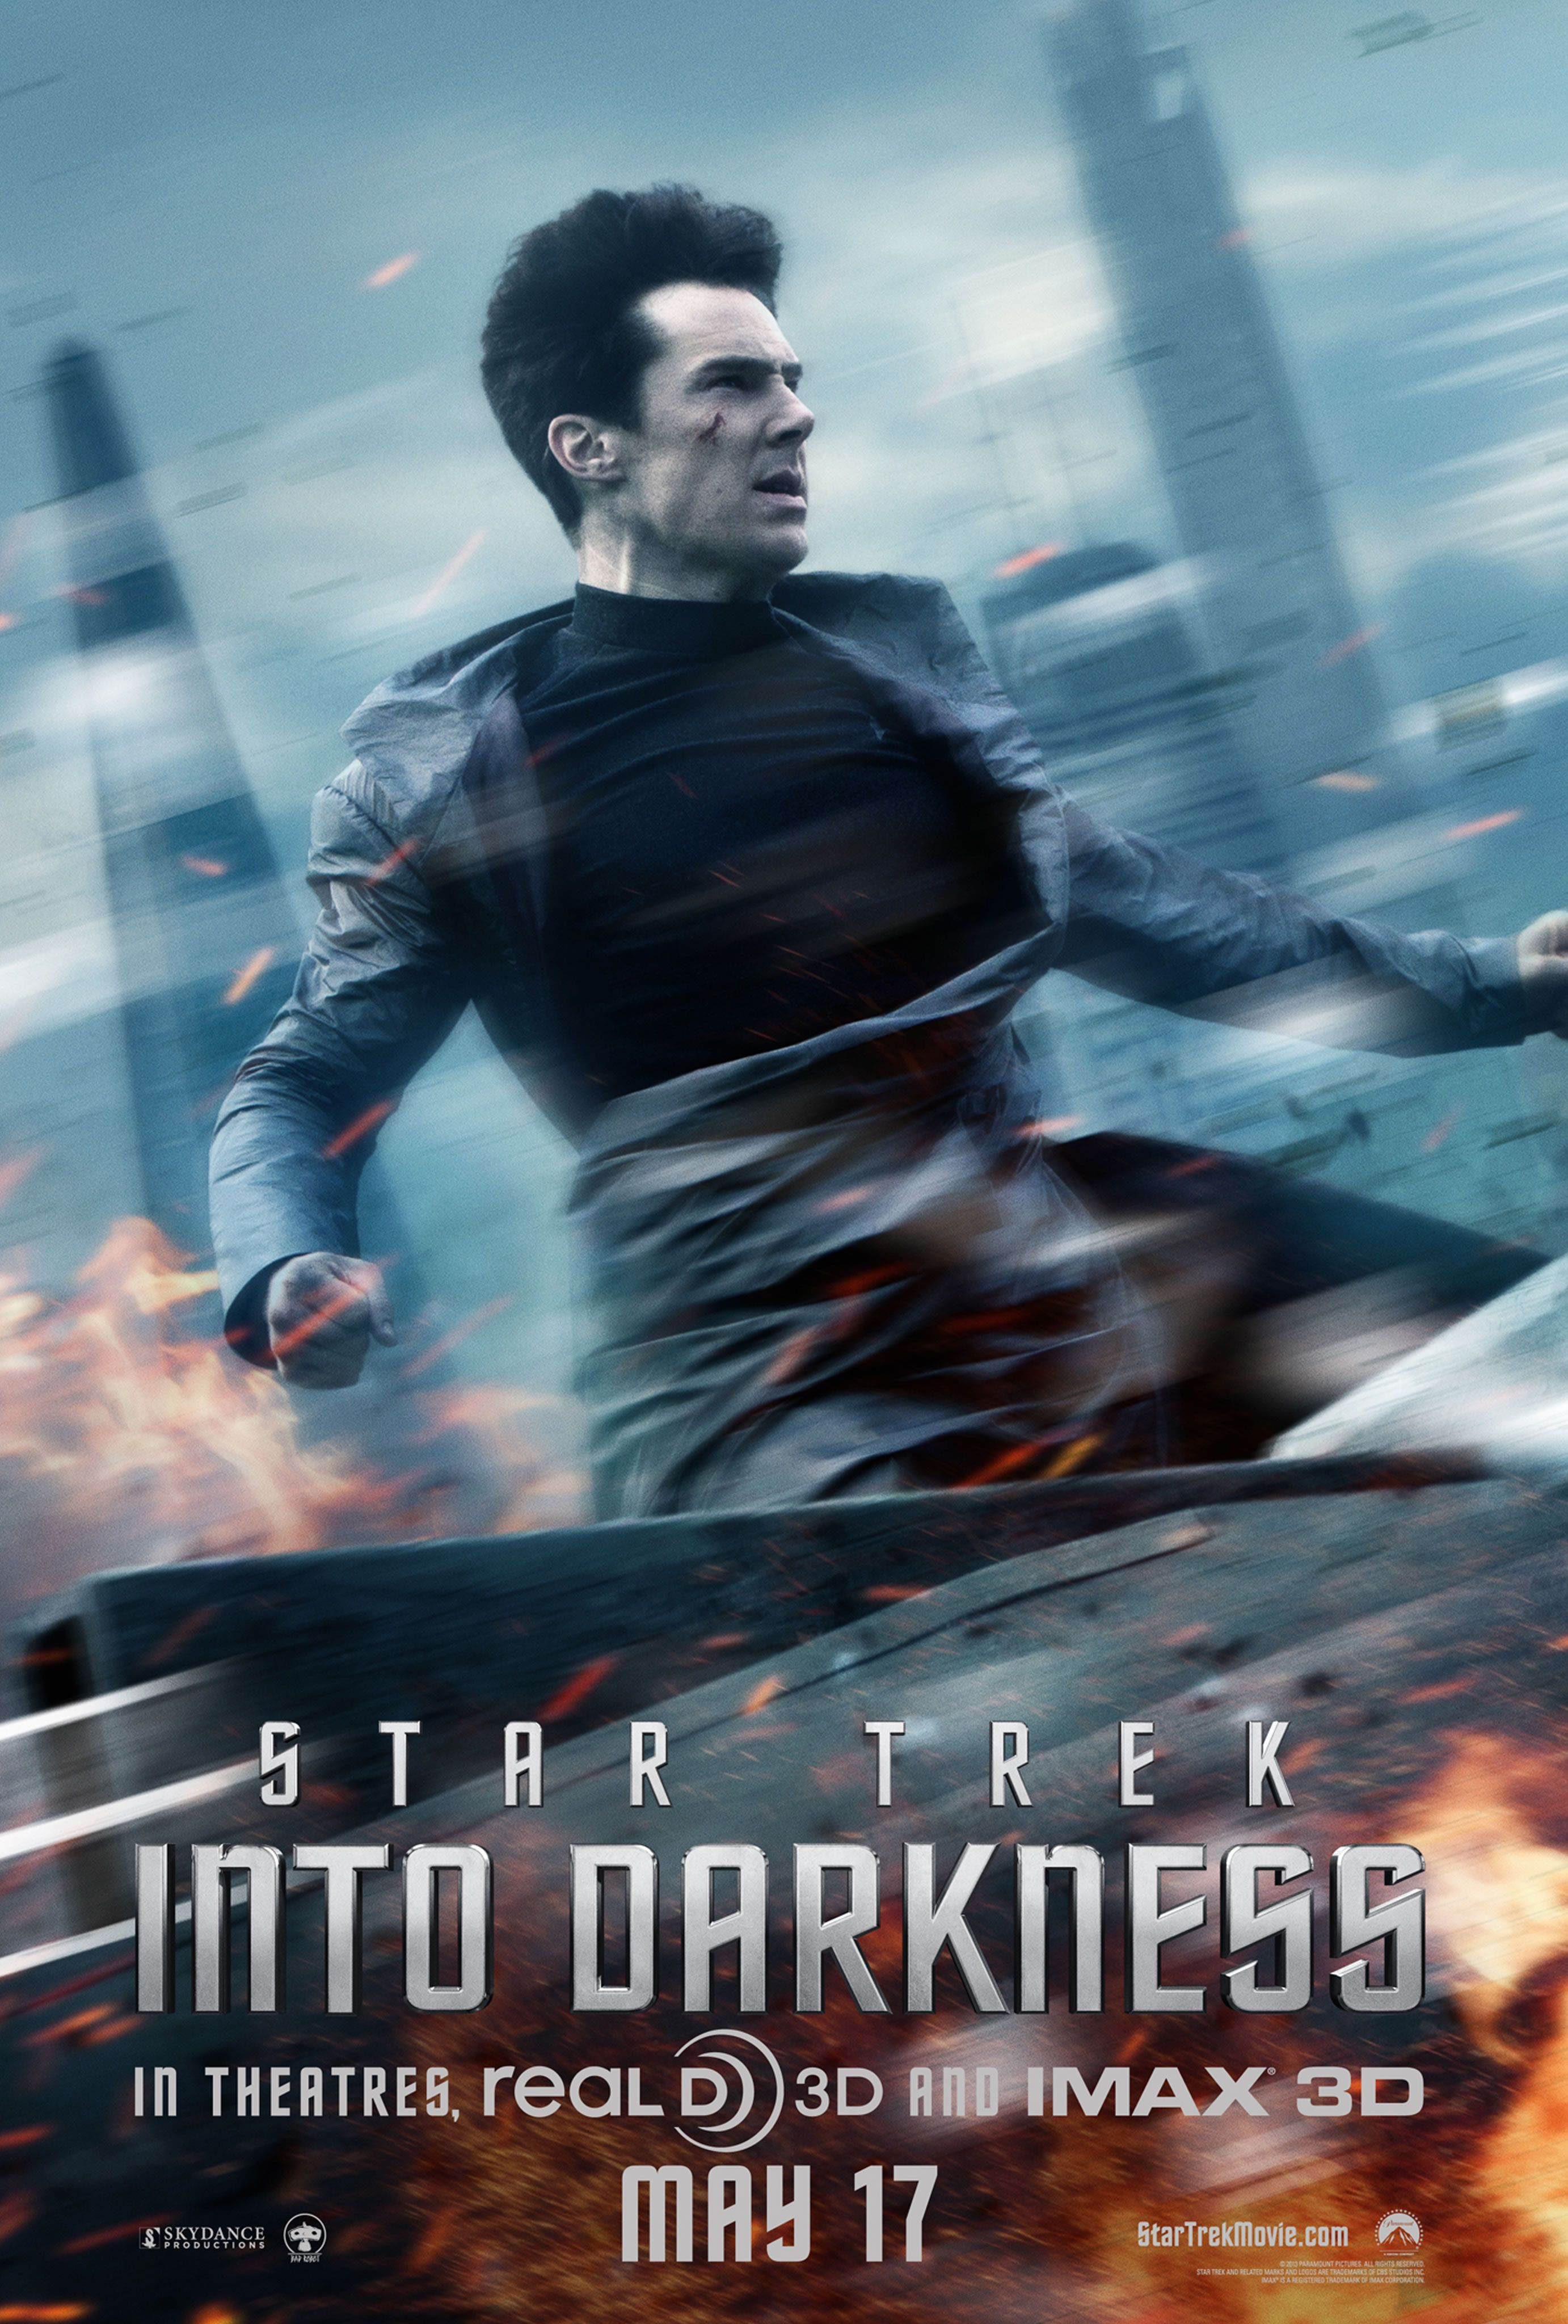 benedict cumberbatch talks star trek into darkness and his